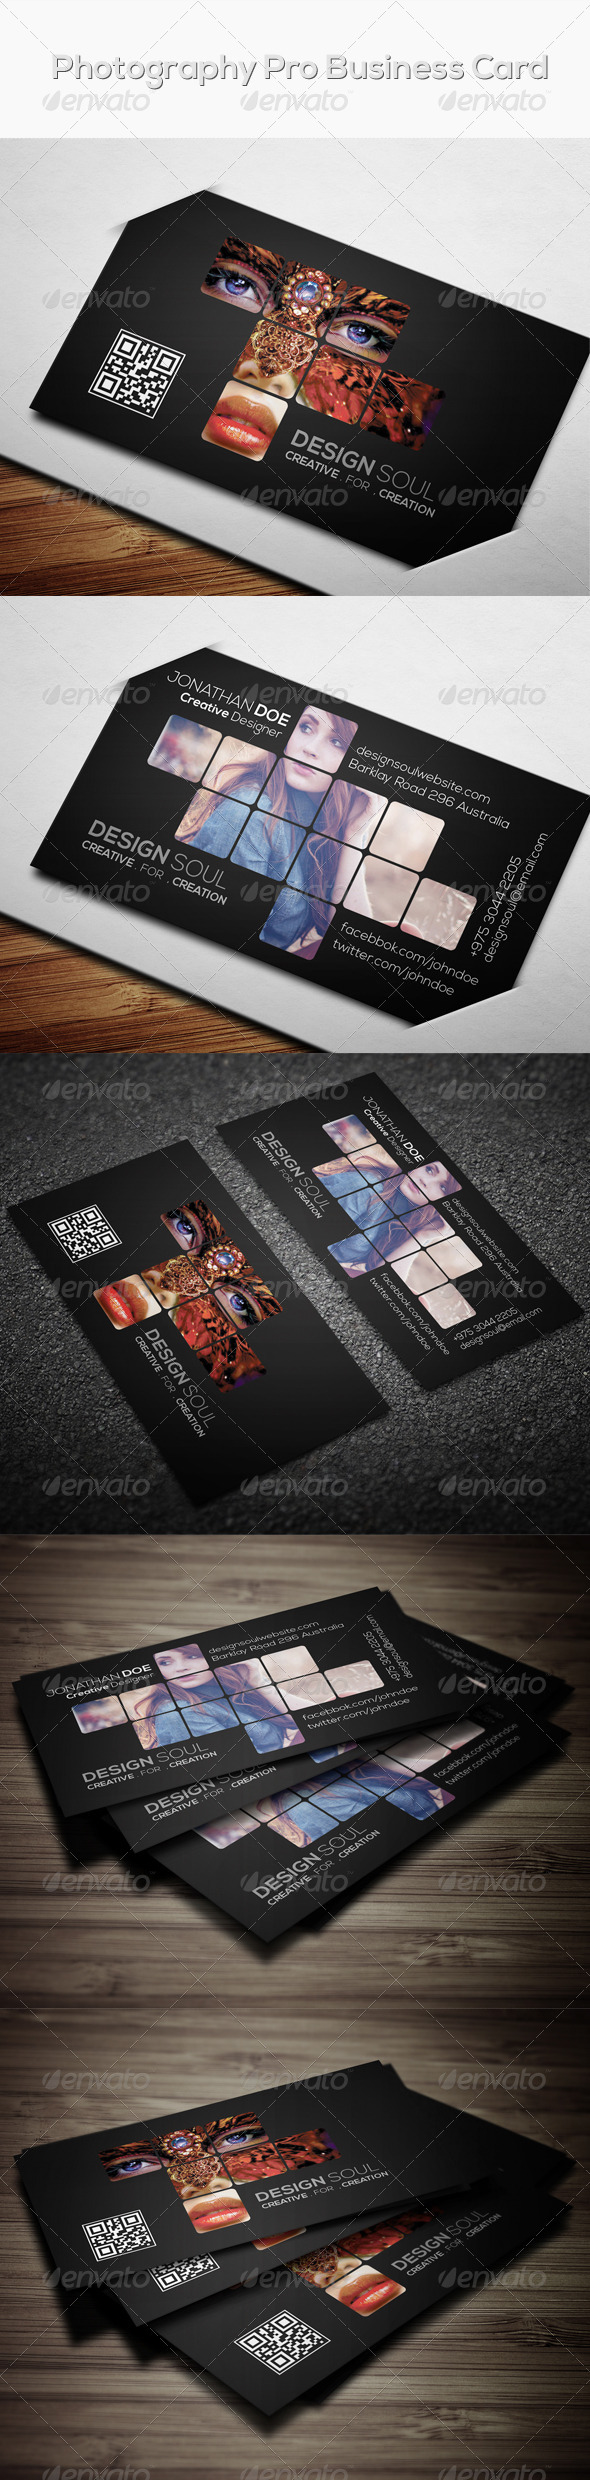 GraphicRiver Photography Pro Business Card 7593487